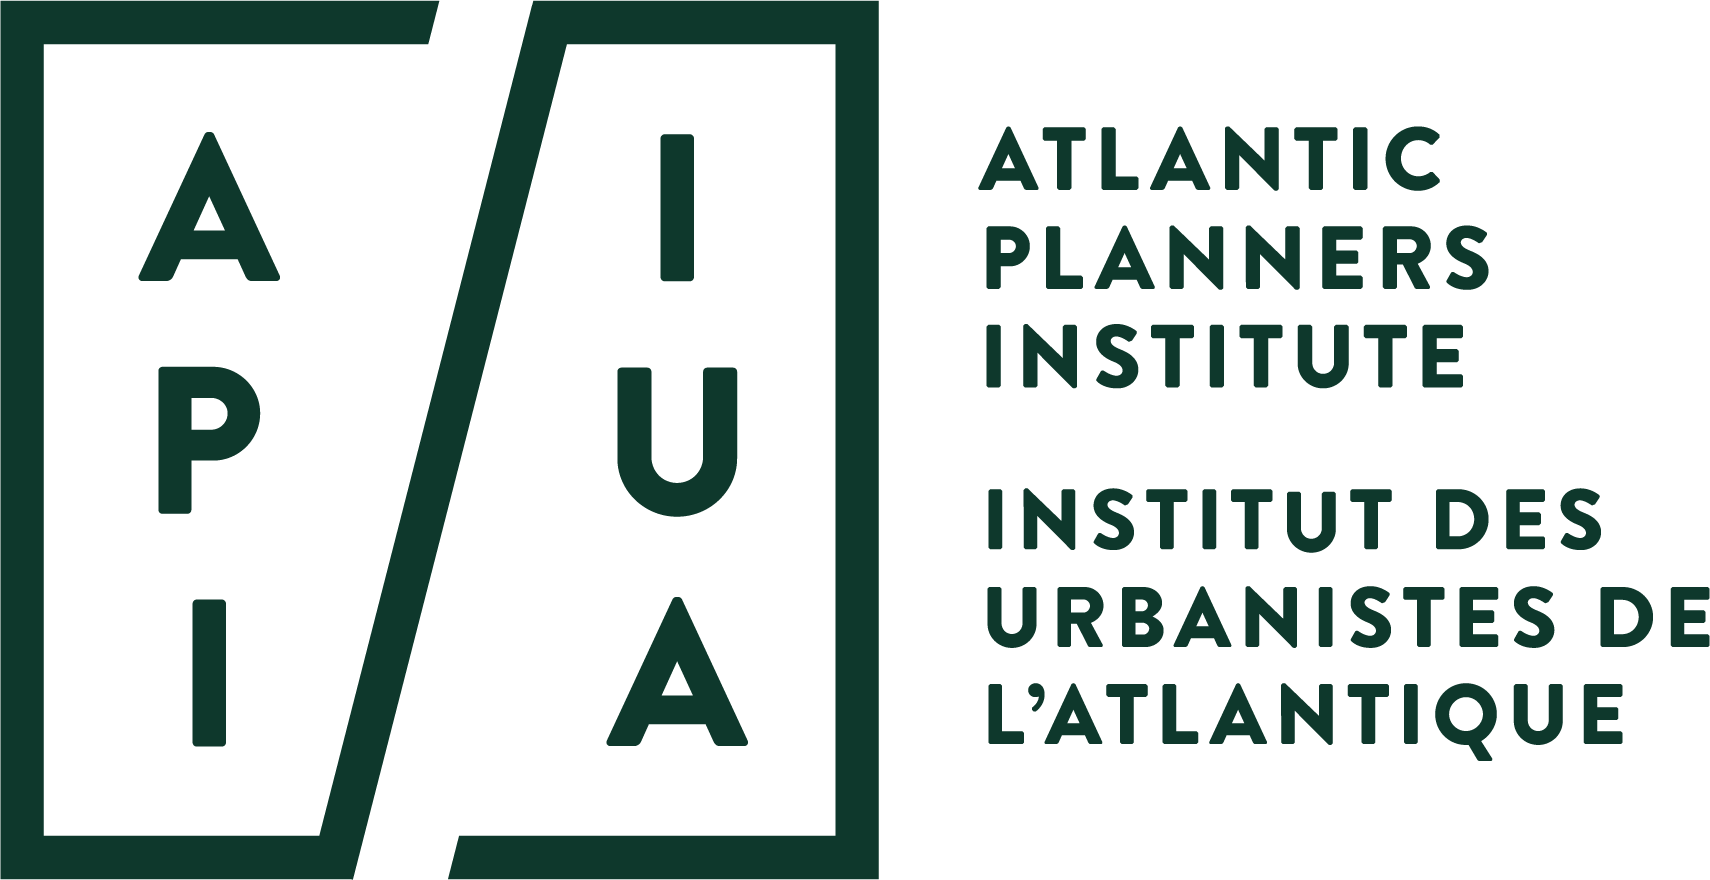 Atlantic Planners Institute logo